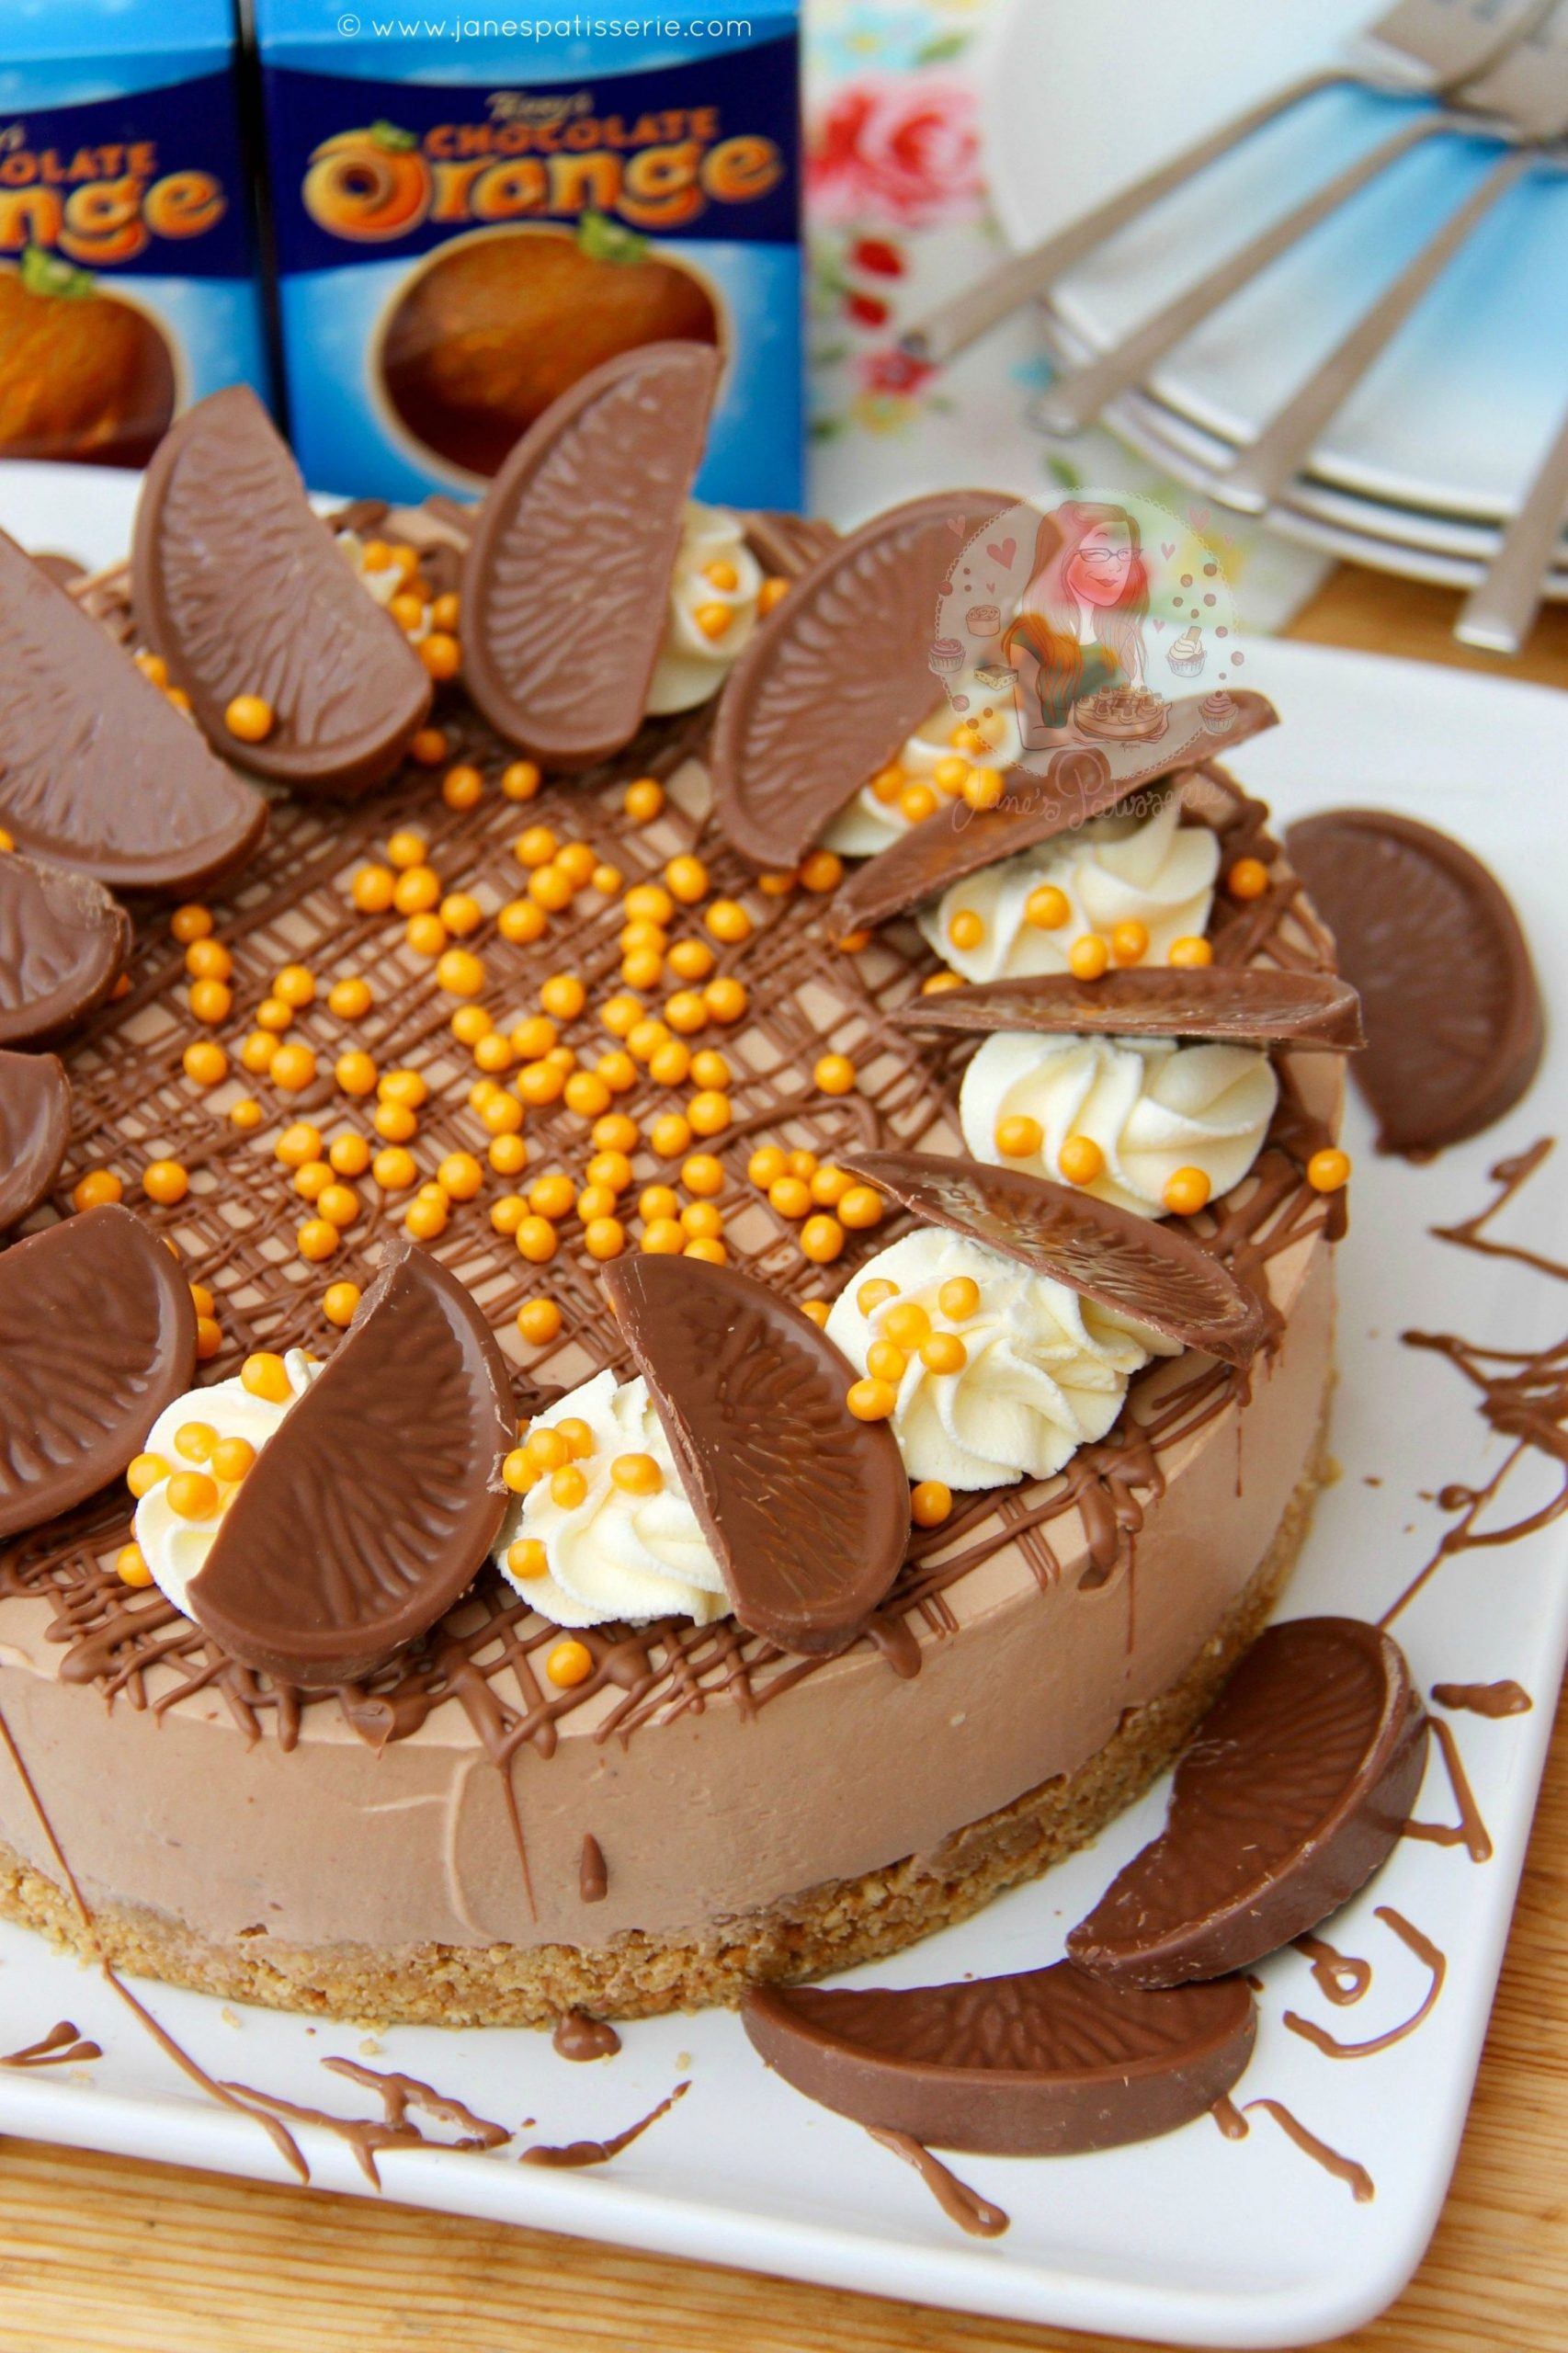 Deliciously creamy No-Bake Terry's Chocolate Orange Cheesecake ...